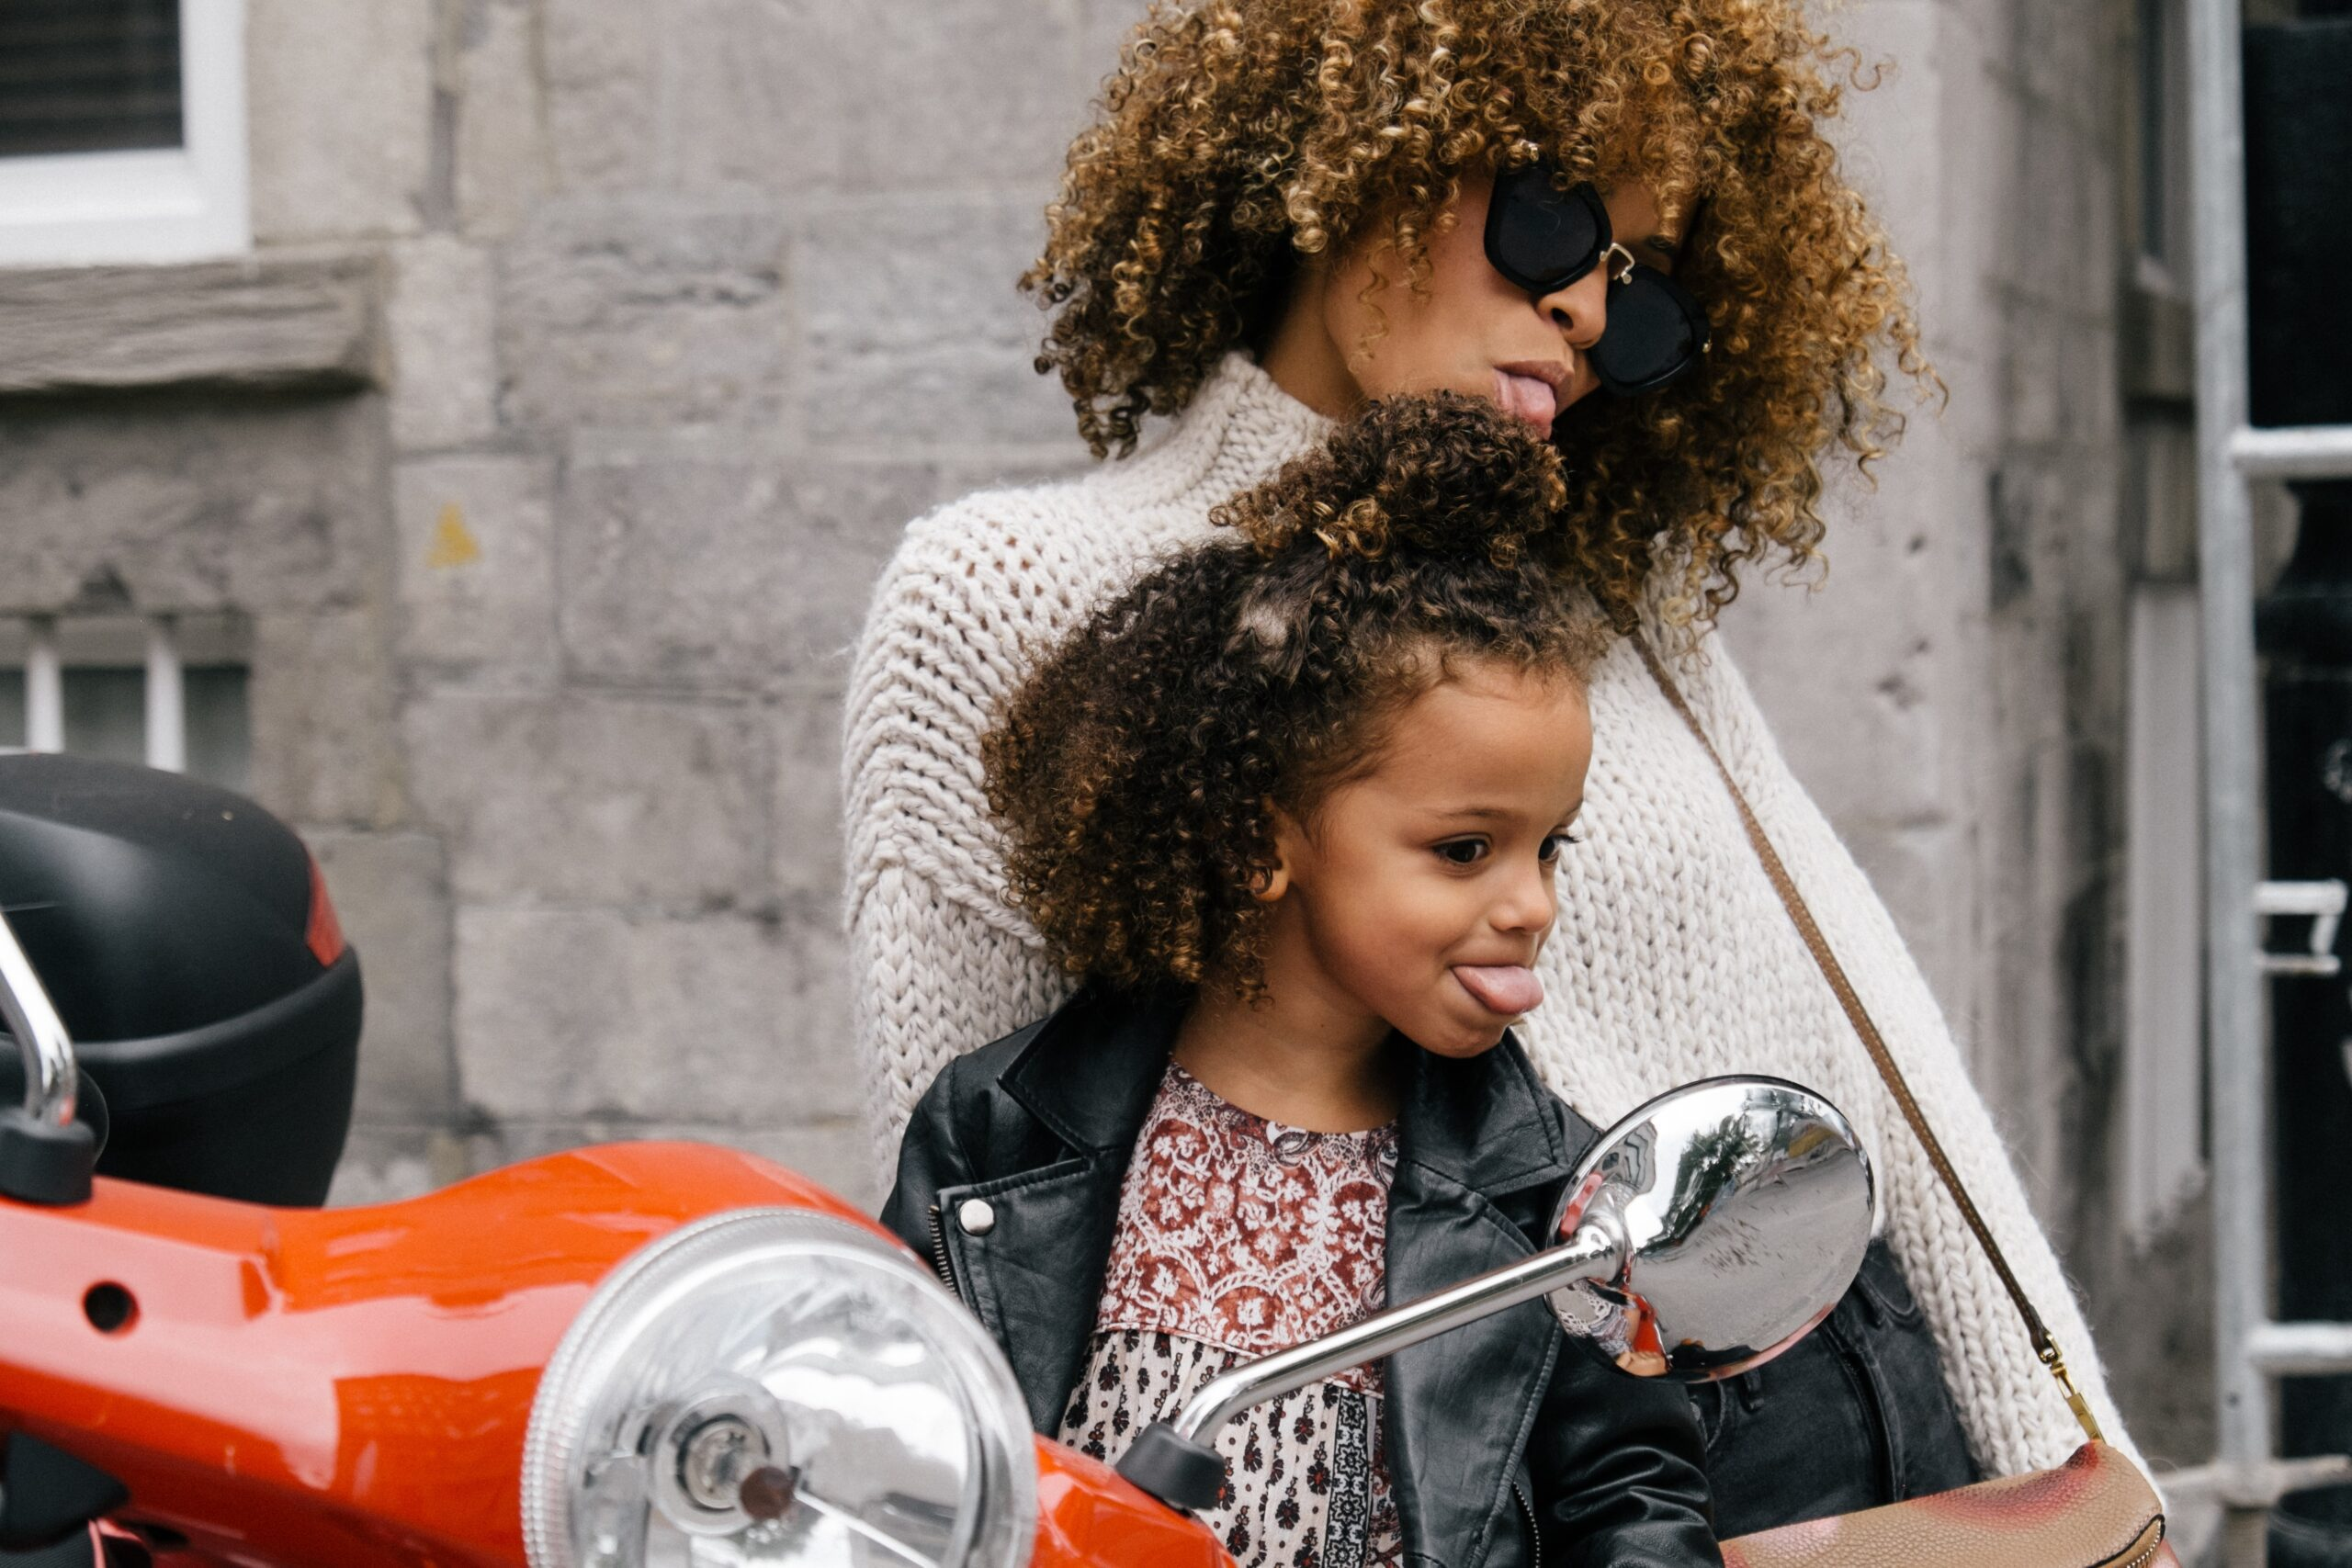 6 Amazing Tips for Family Travel with Kids